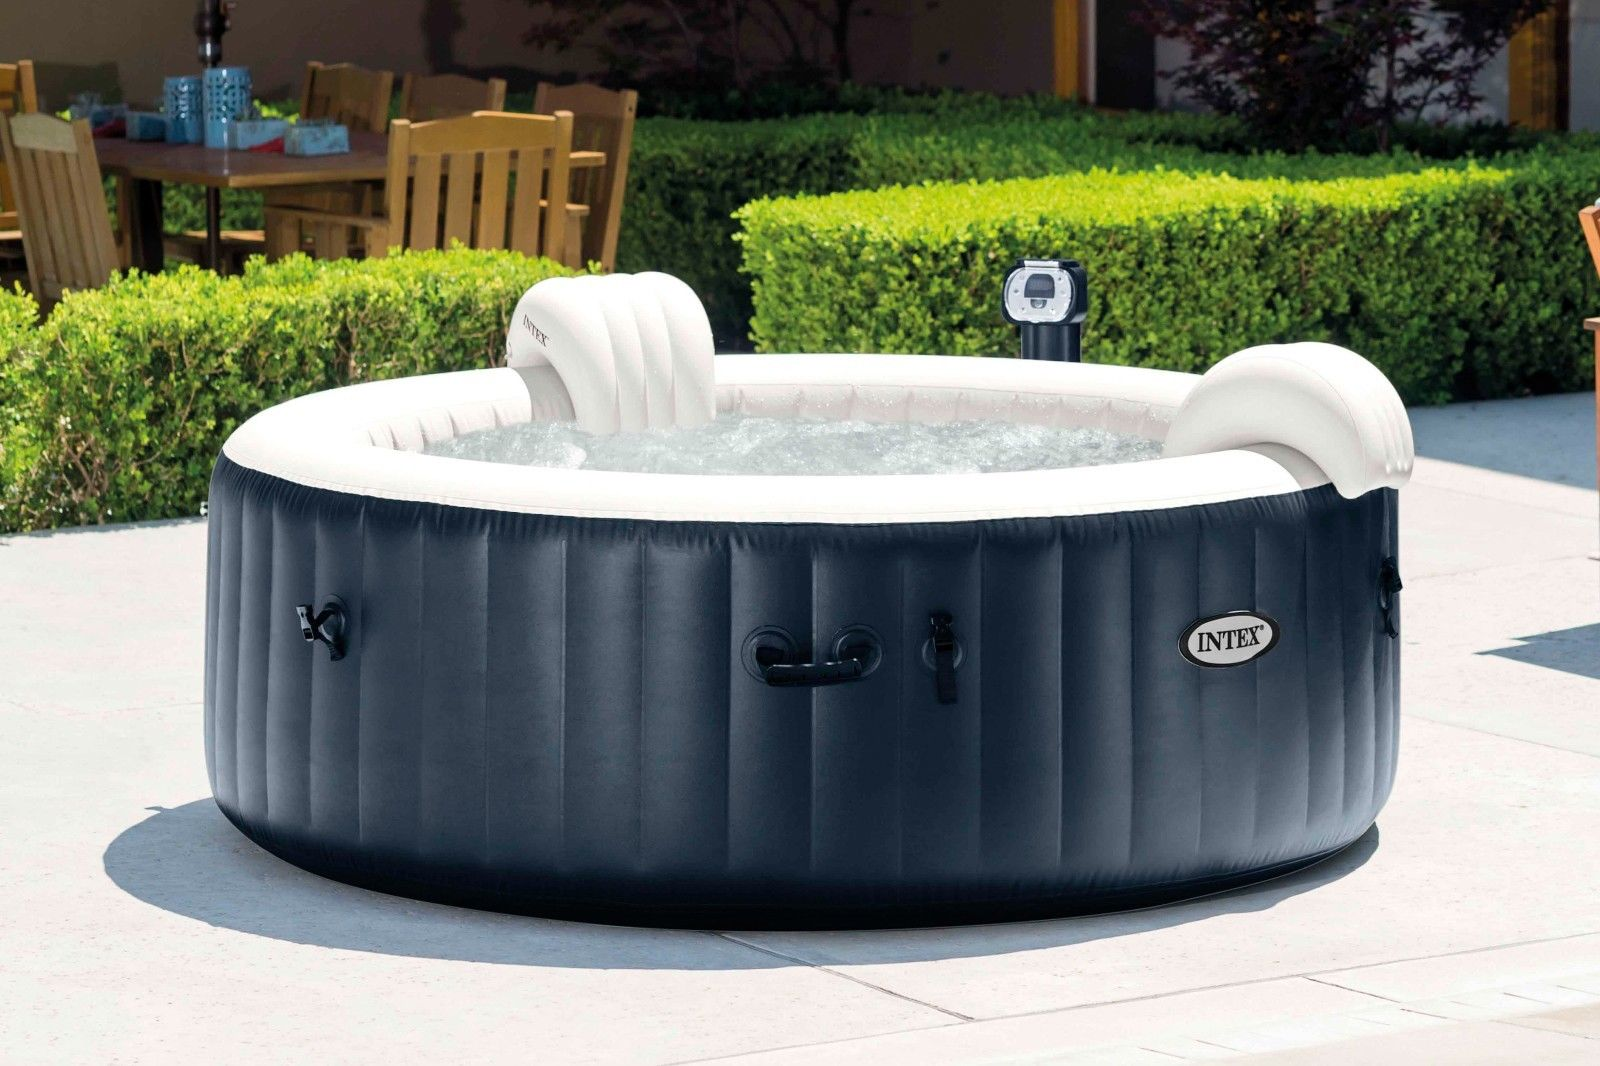 Intex pure spa 4 person inflatable portable heated bubble hot tub model 28405 - Filtre pour spa jacuzzi ...